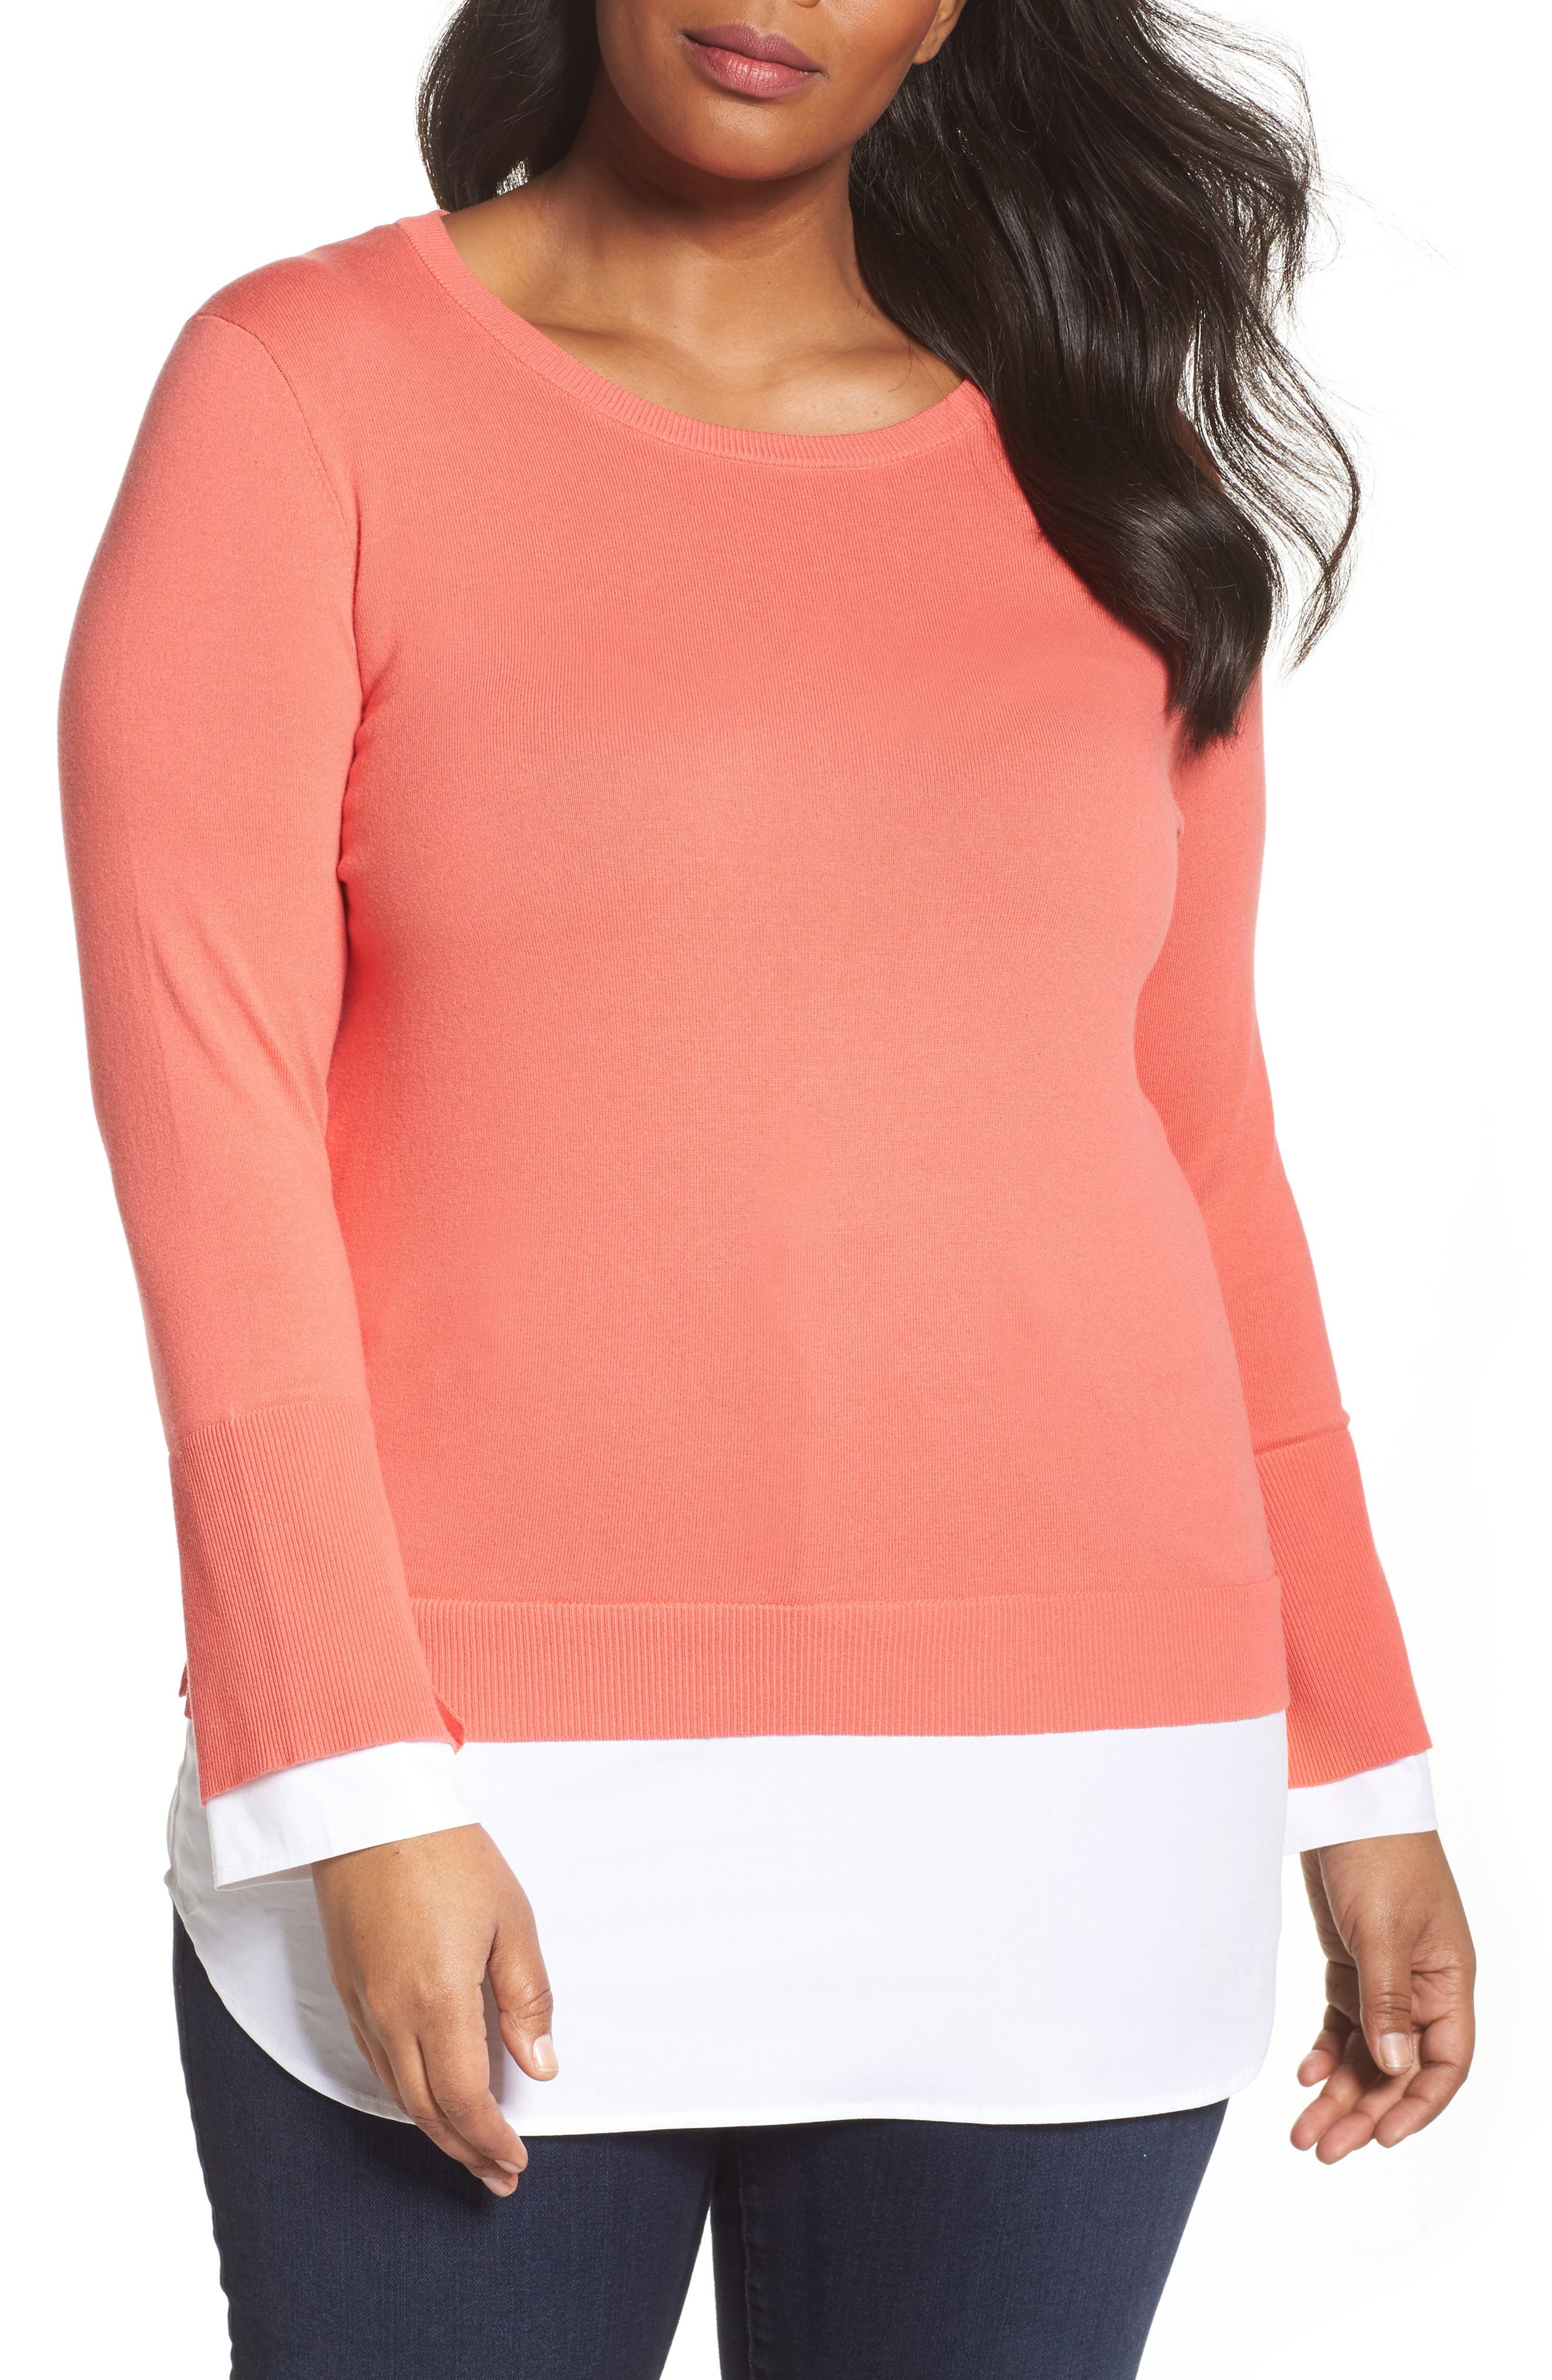 Vince Camuto Layered Look Sweater (Plus Size)